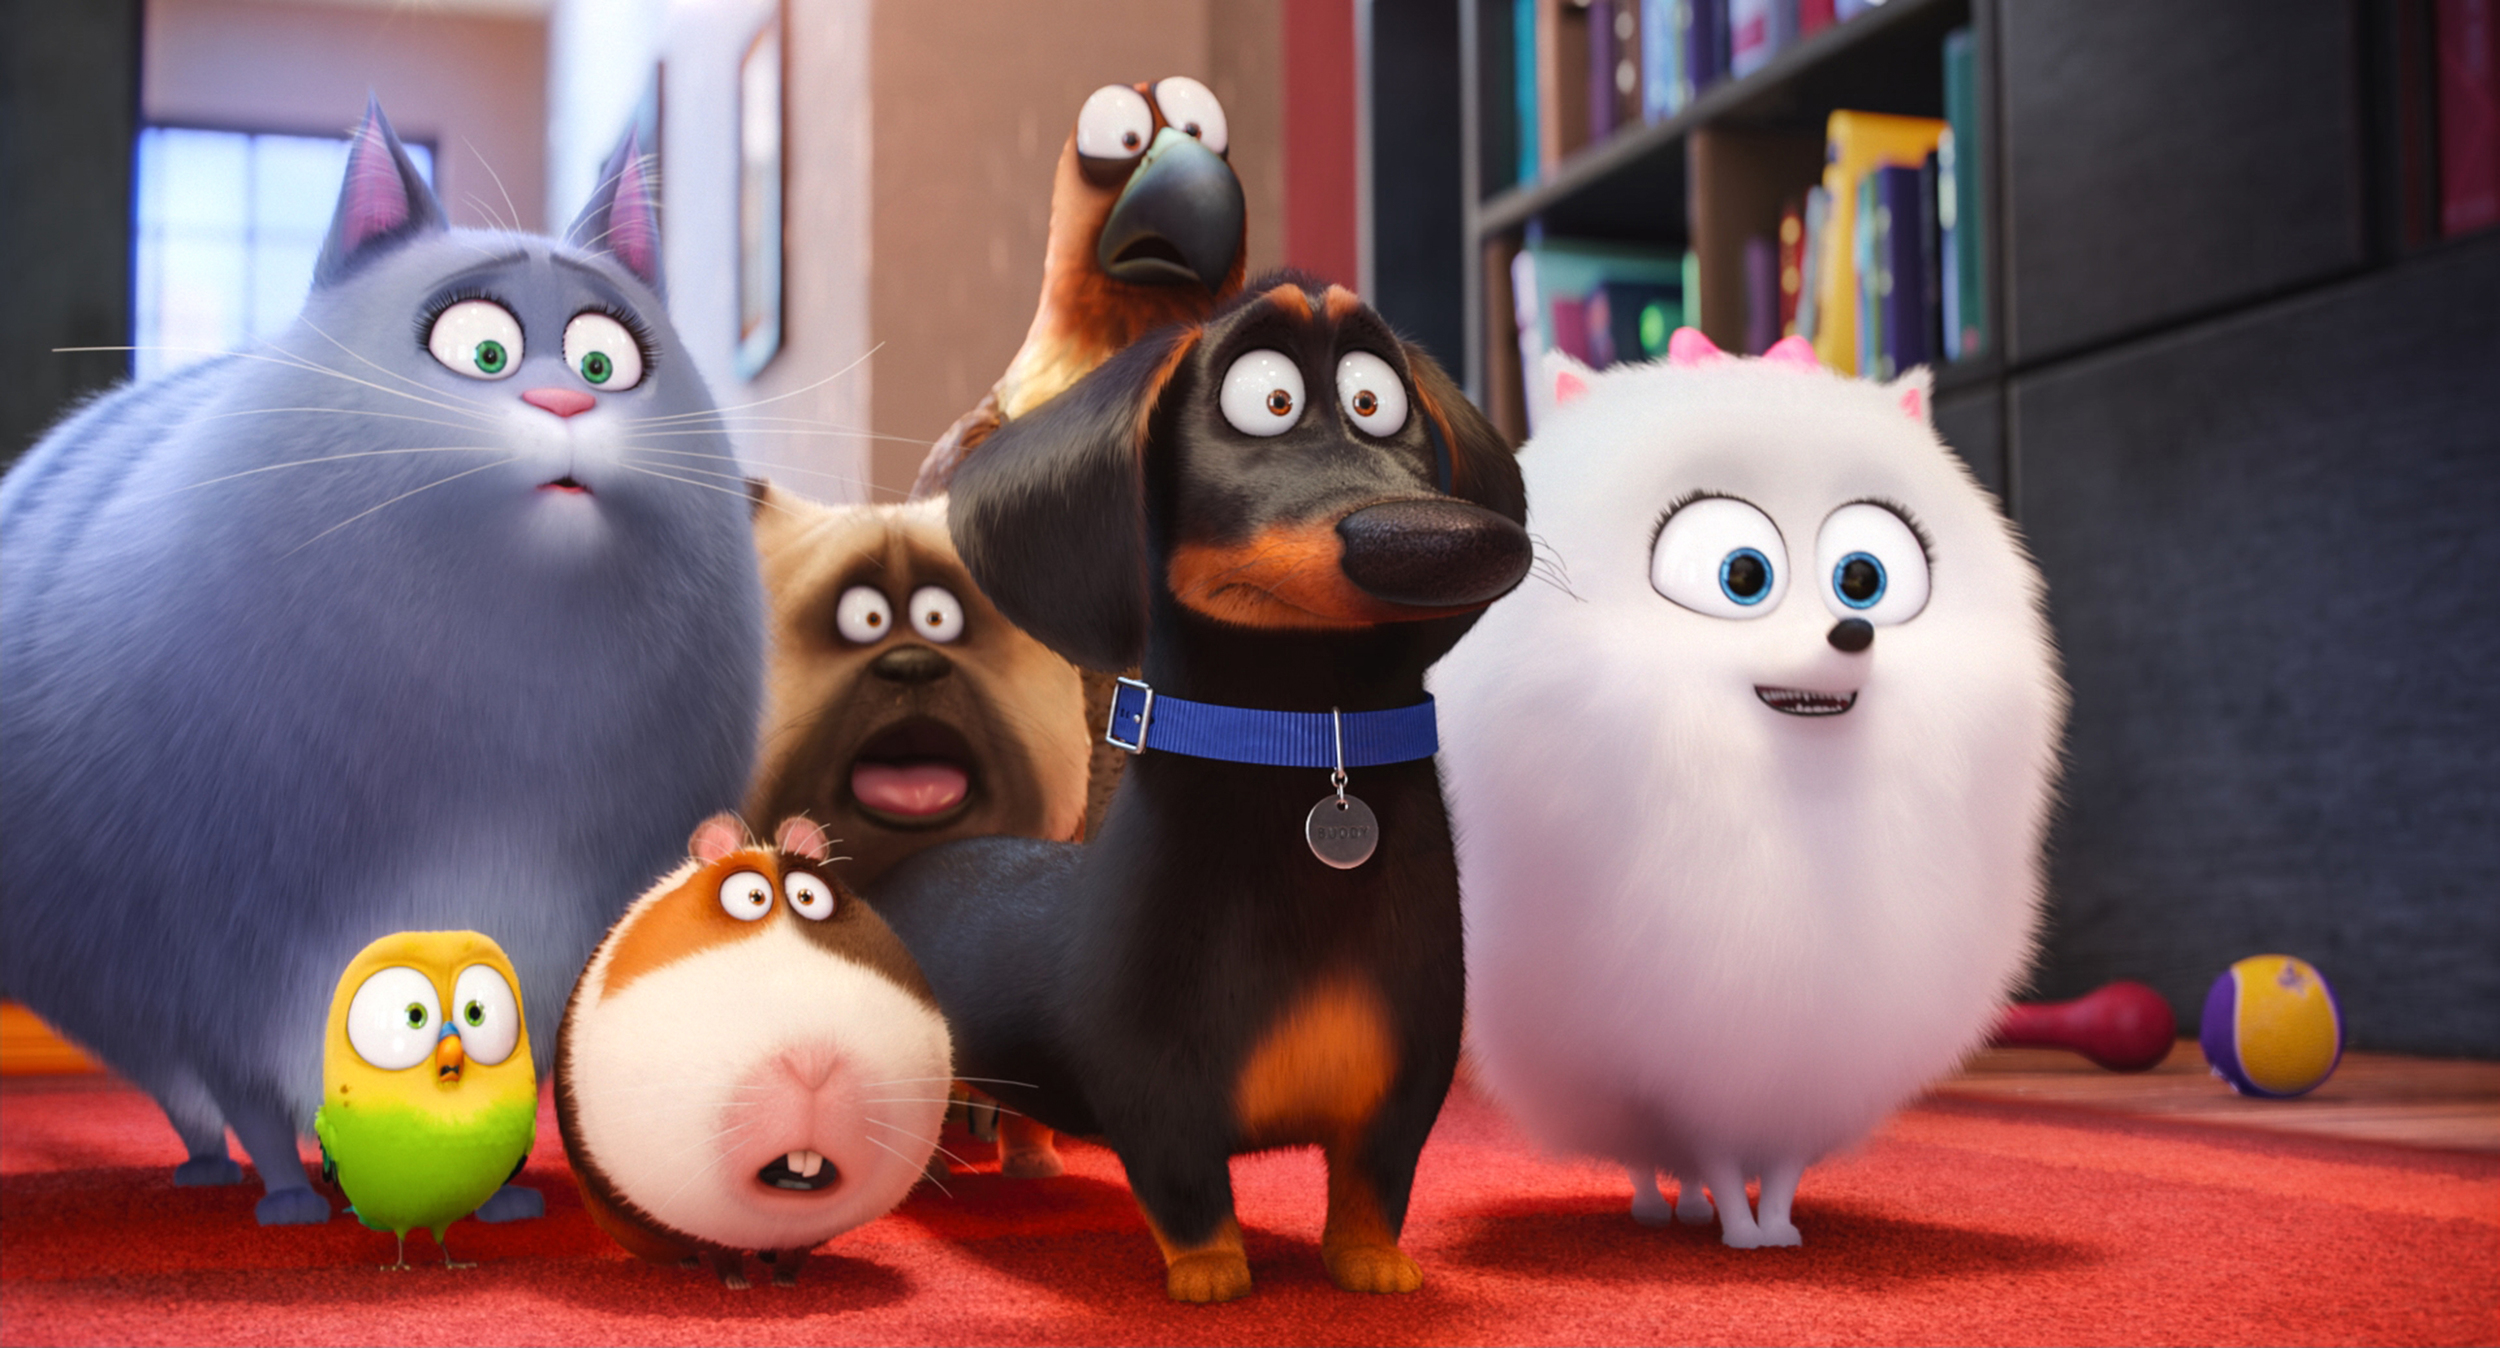 """(L to R) Chloe (LAKE BELL), Sweetpea, Norman (CHRIS RENAUD), Mel (BOBBY MOYNIHAN), Buddy (HANNIBAL BURESS), Tiberius (ALBERT BROOKS) and Gidget (JENNY SLATE) in Illumination Entertainment and Universal Pictures' """"The Secret Life of Pets,"""" a comedy about the lives our pets lead after we leave for work or school each day."""